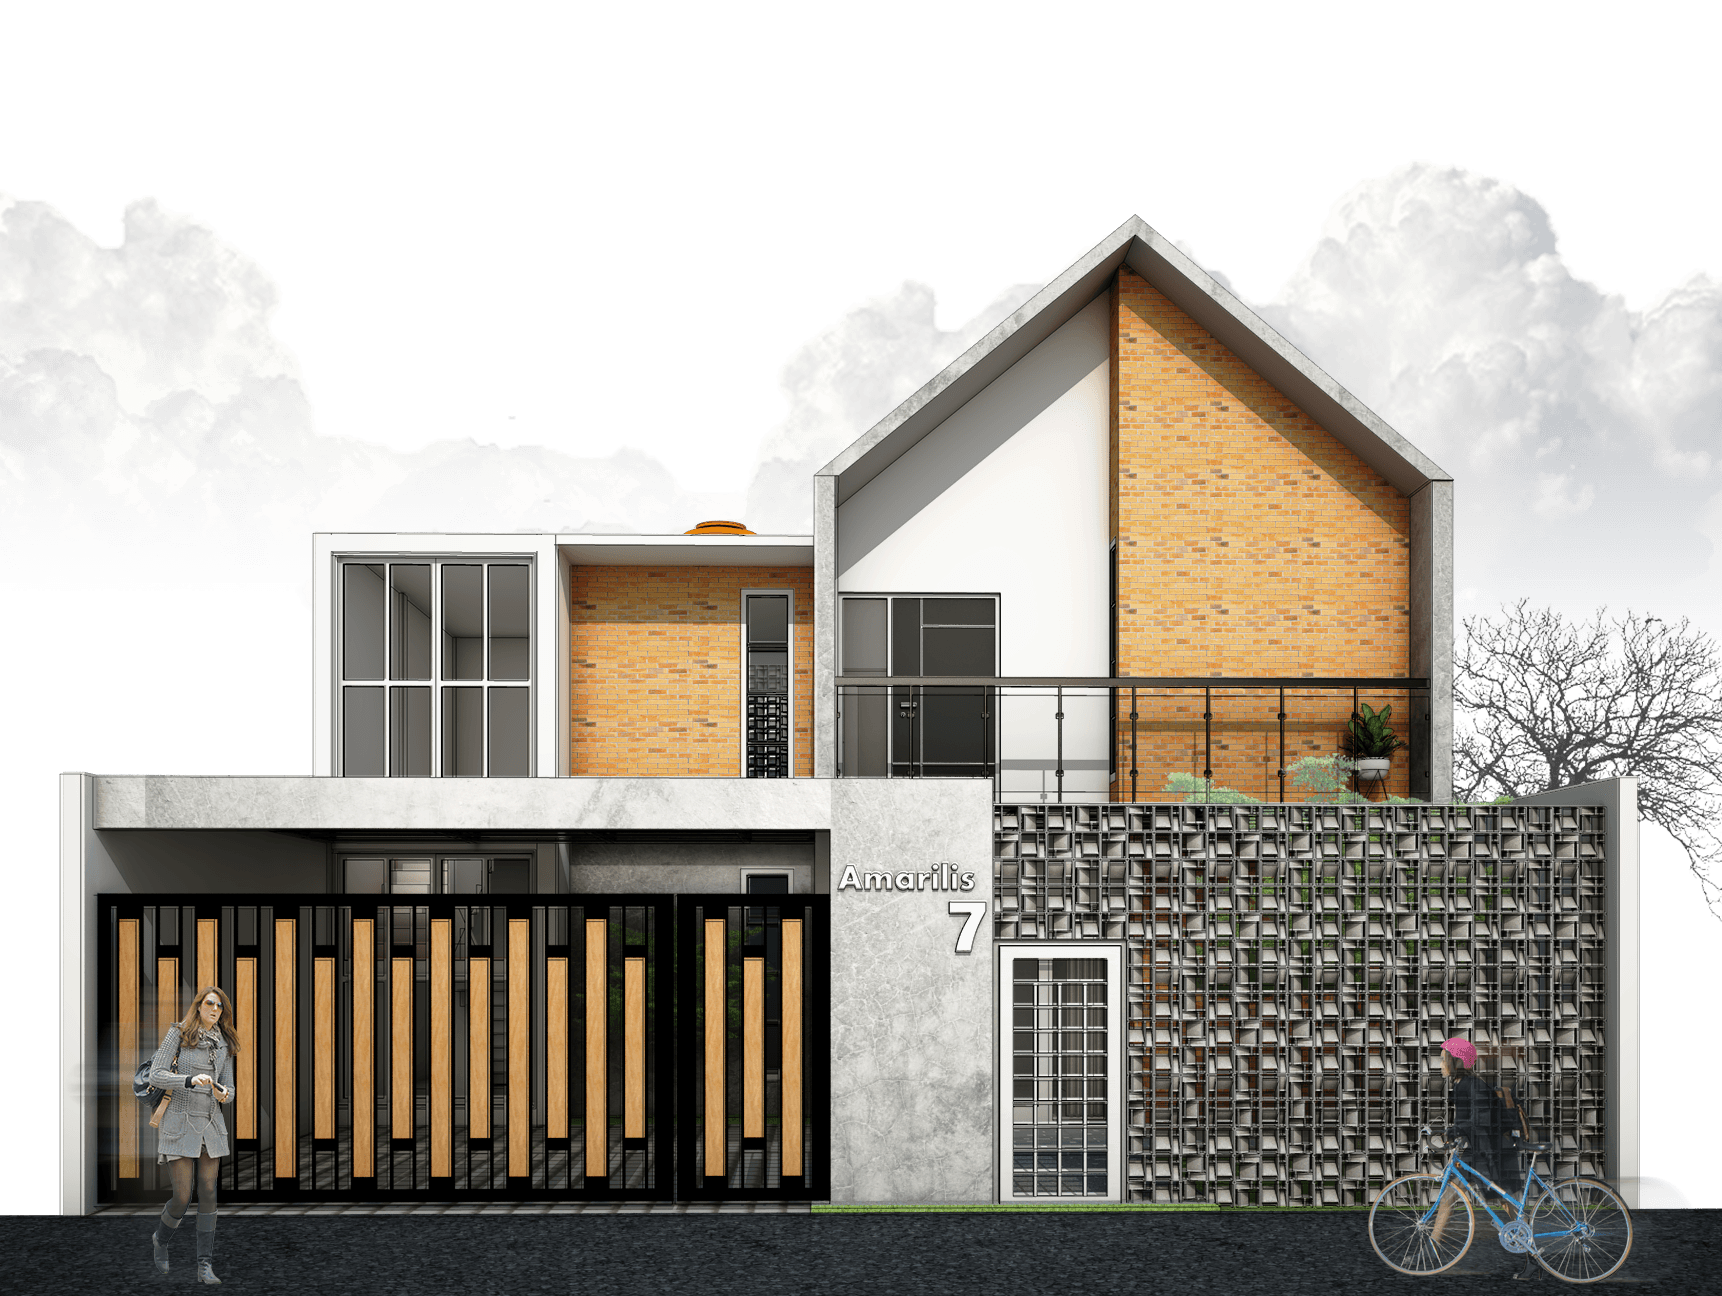 Jasa Design and Build ASTABUMI ARCHITECT & INTERIOR DESIGN di Yogyakarta